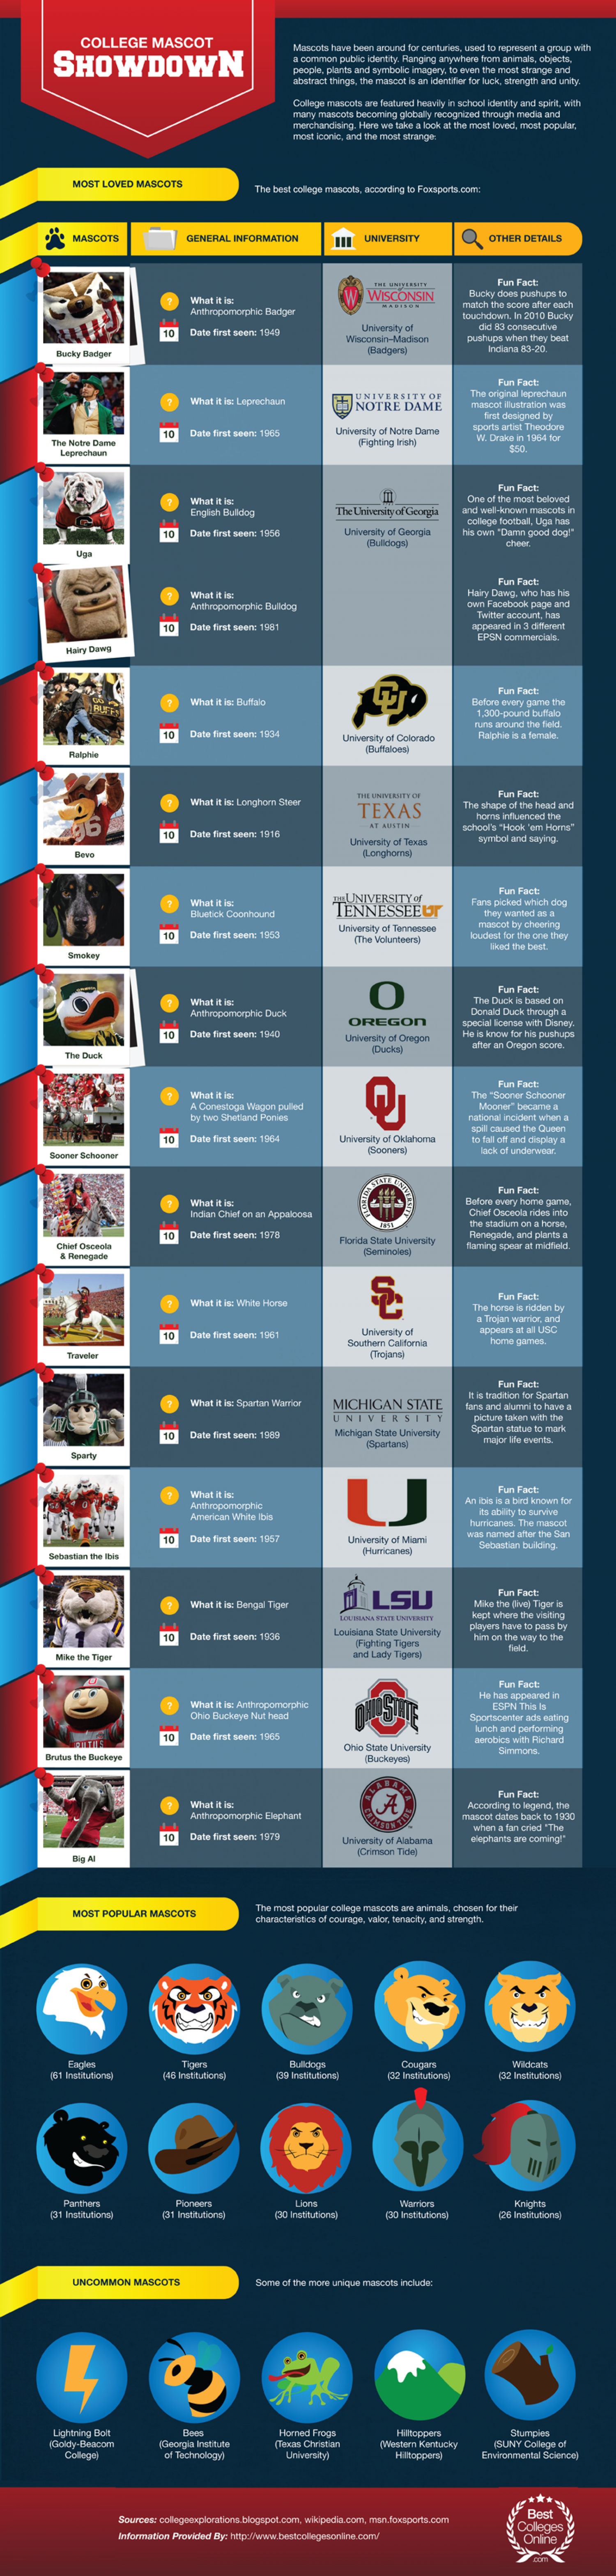 College Mascot Showdown Infographic